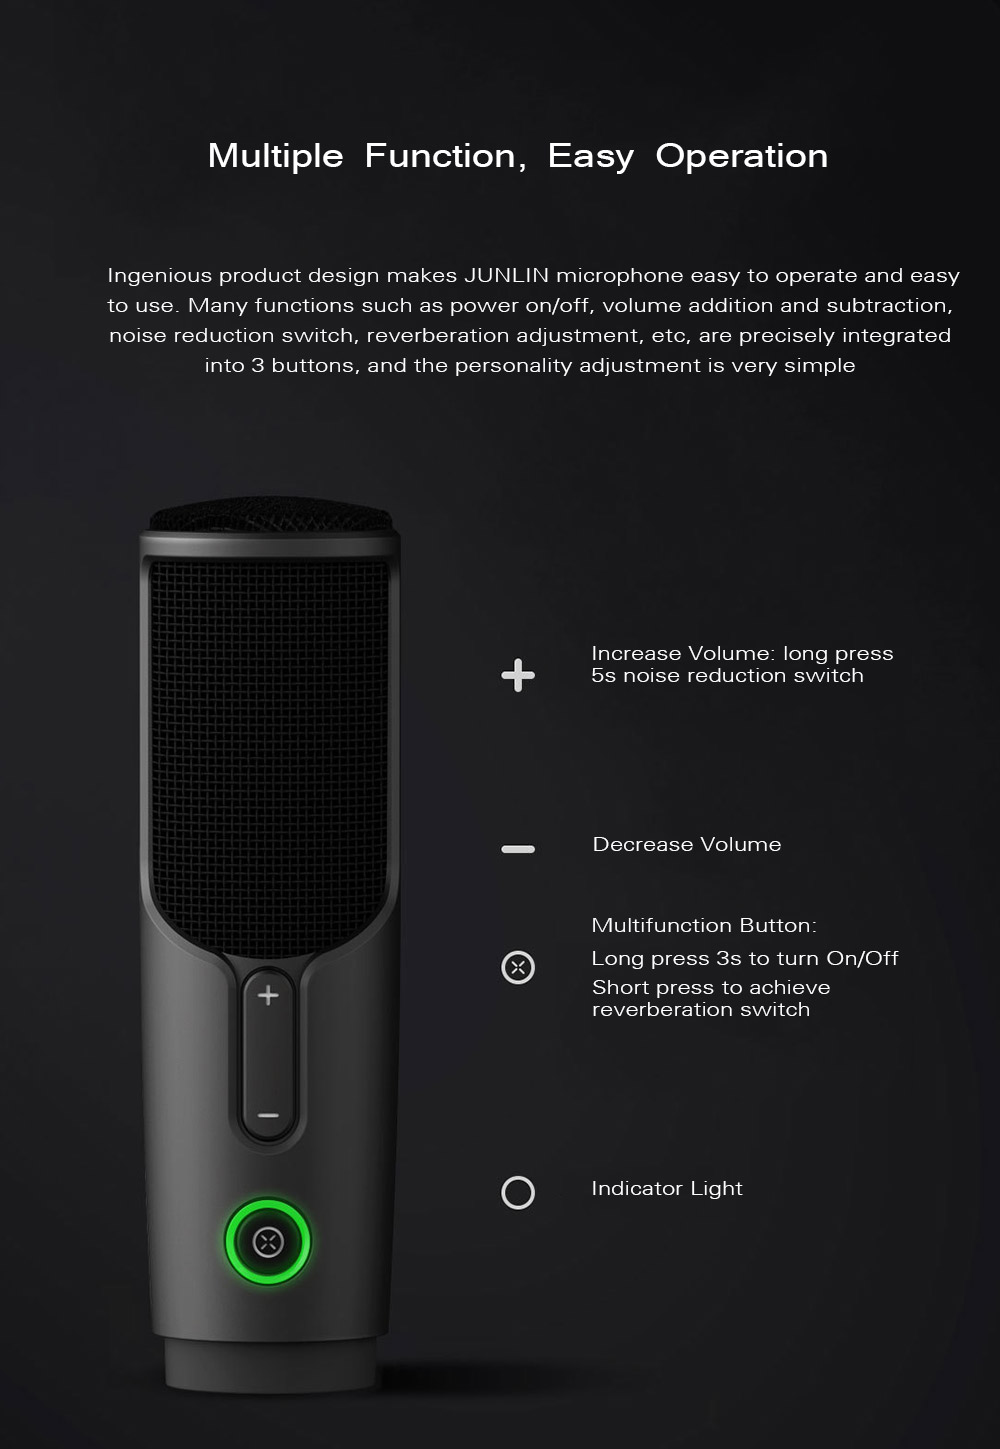 JUNLIN JLM02 Wired Digital Microphone from Xiaomi youpin - Black